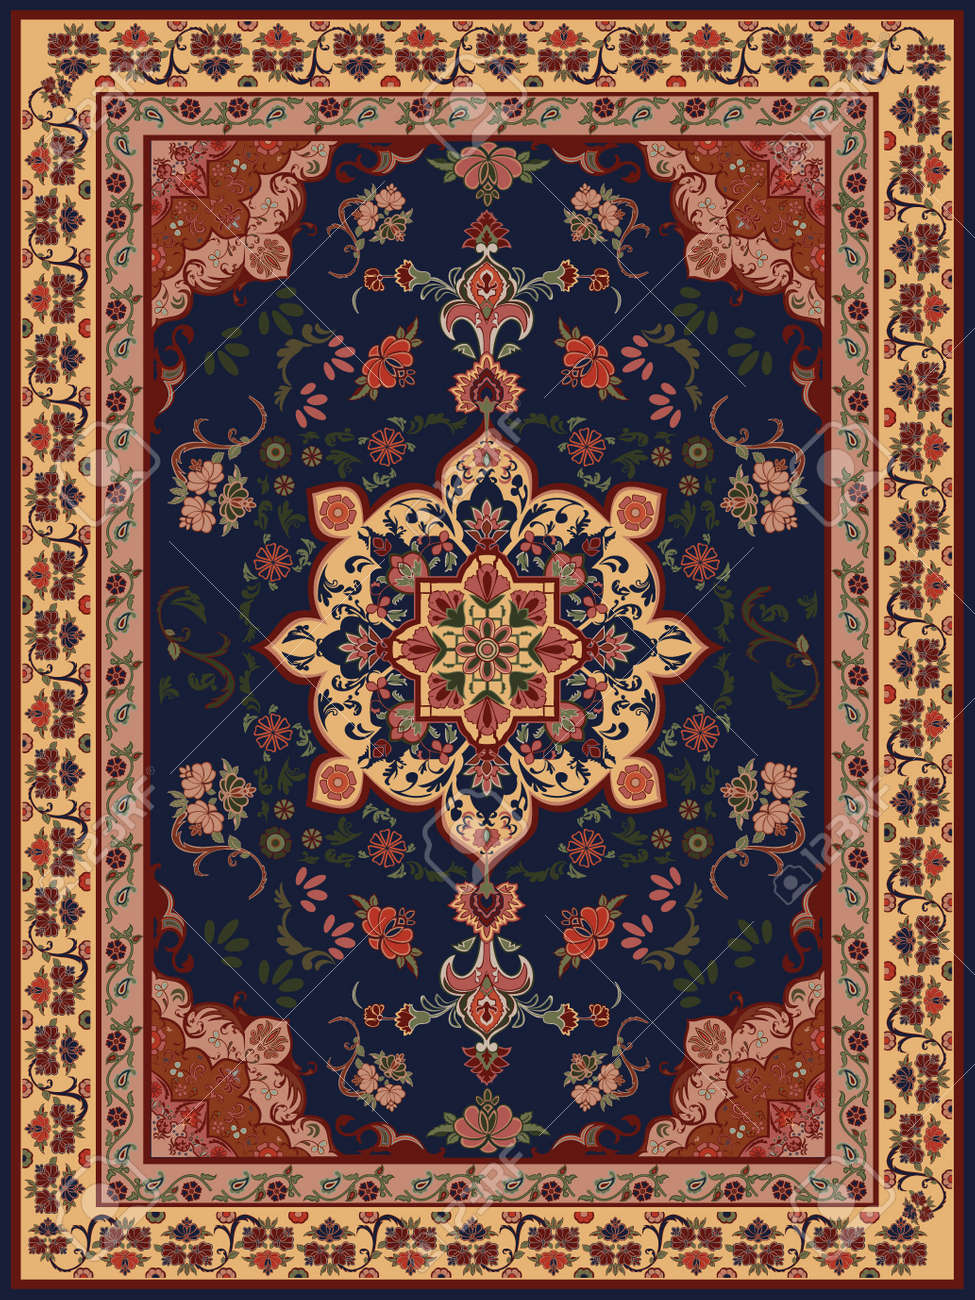 Carpet Design Glamorous Oriental Floral Carpet Design Royalty Free Cliparts Vectors And . Design Decoration